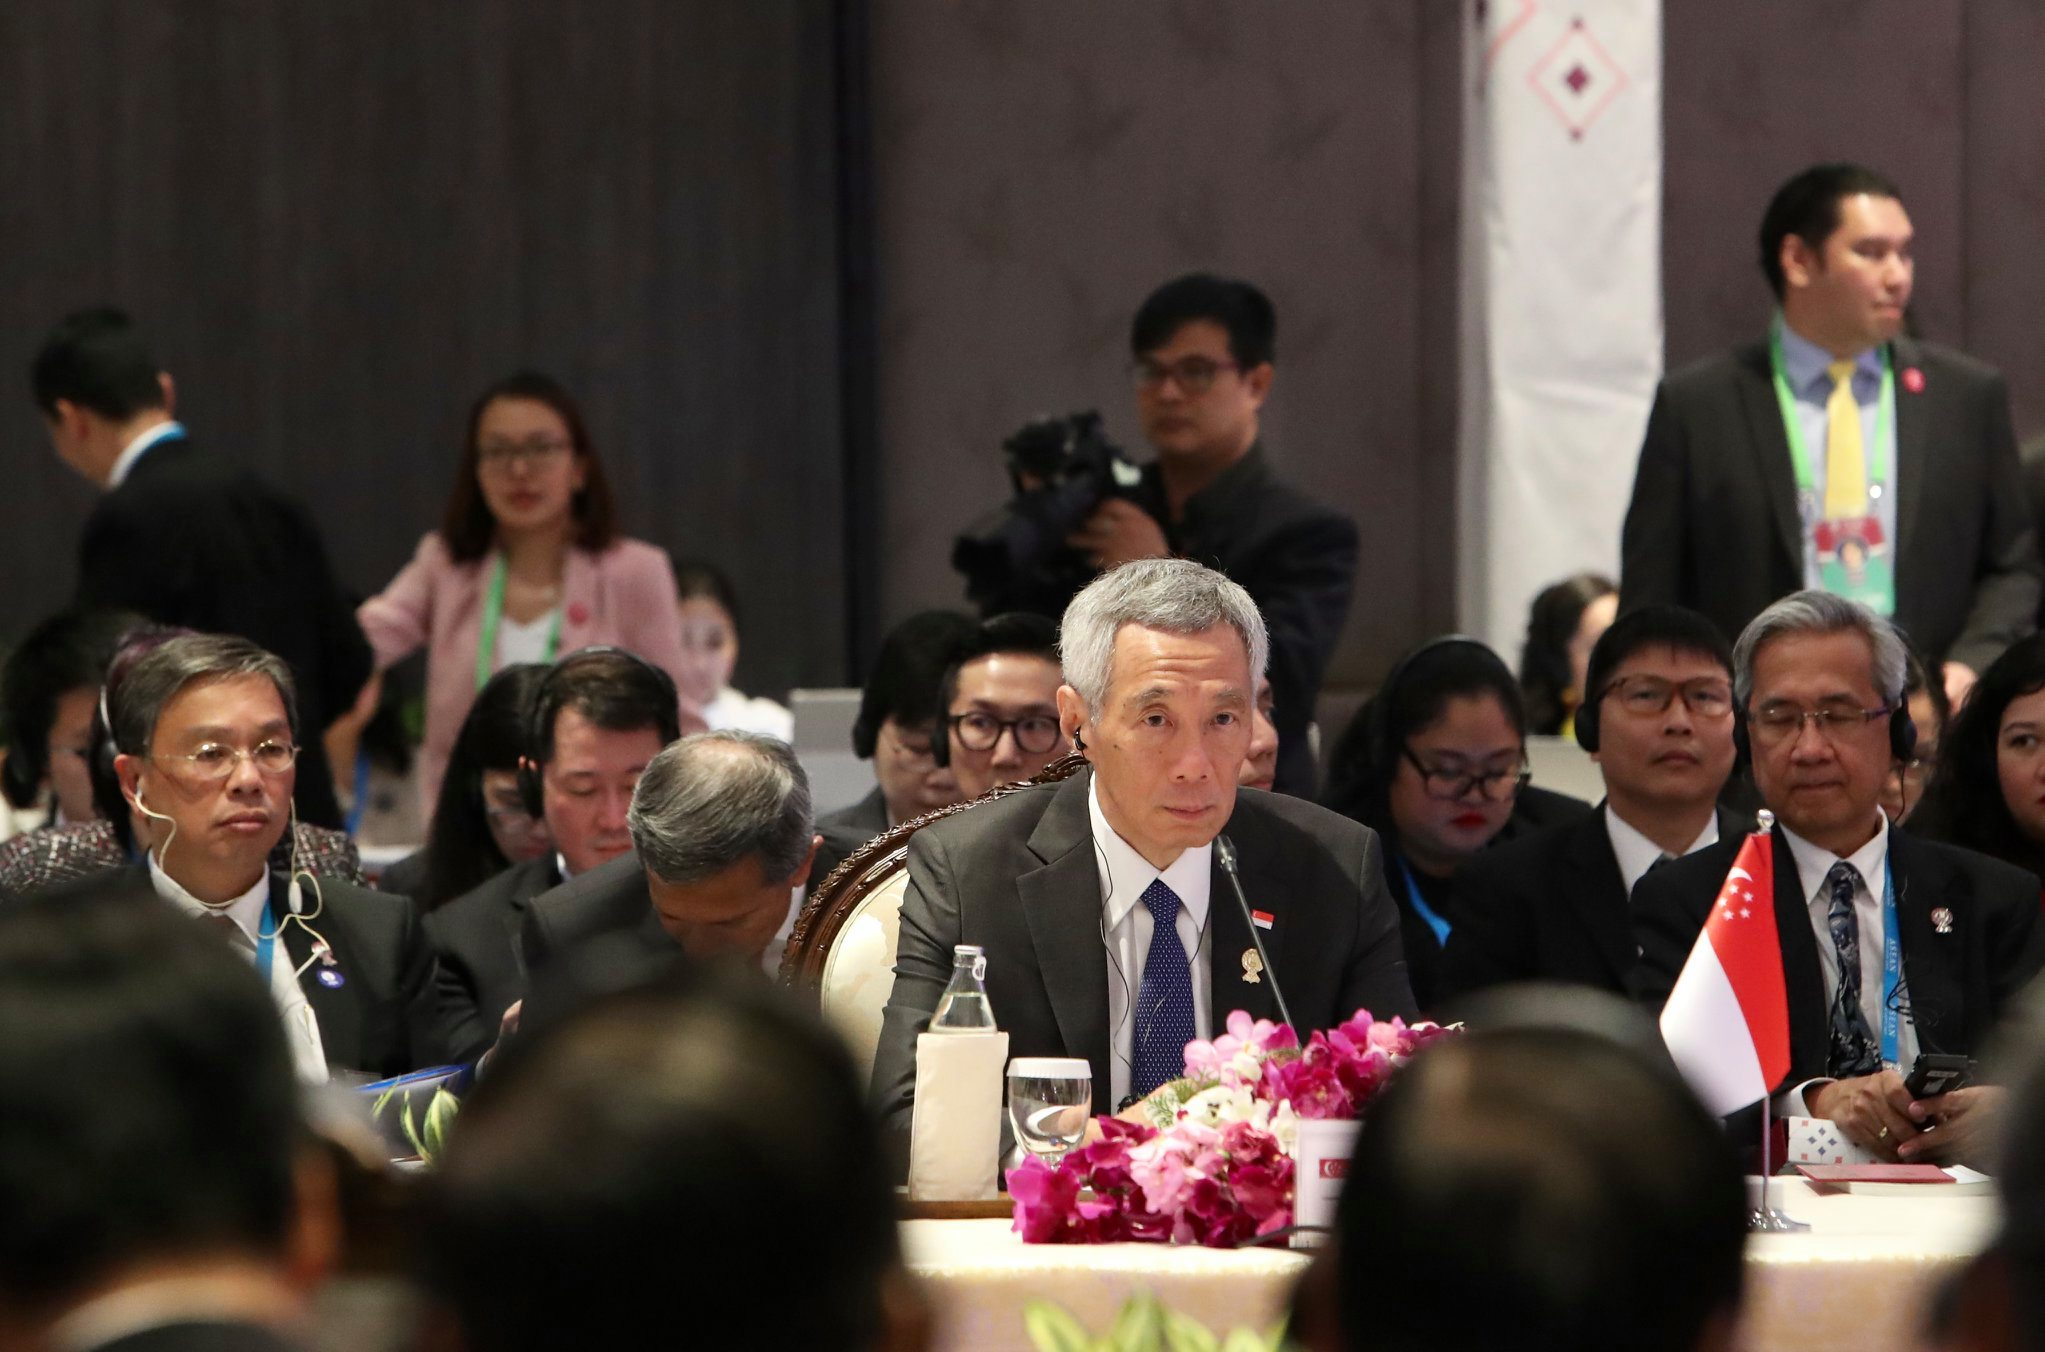 Singapore's Prime Minister Lee Hsien Loong at the 16th ASEAN-India Summit held in Bangkok, Thailand. Photo courtesy: Betty Chua, MCI